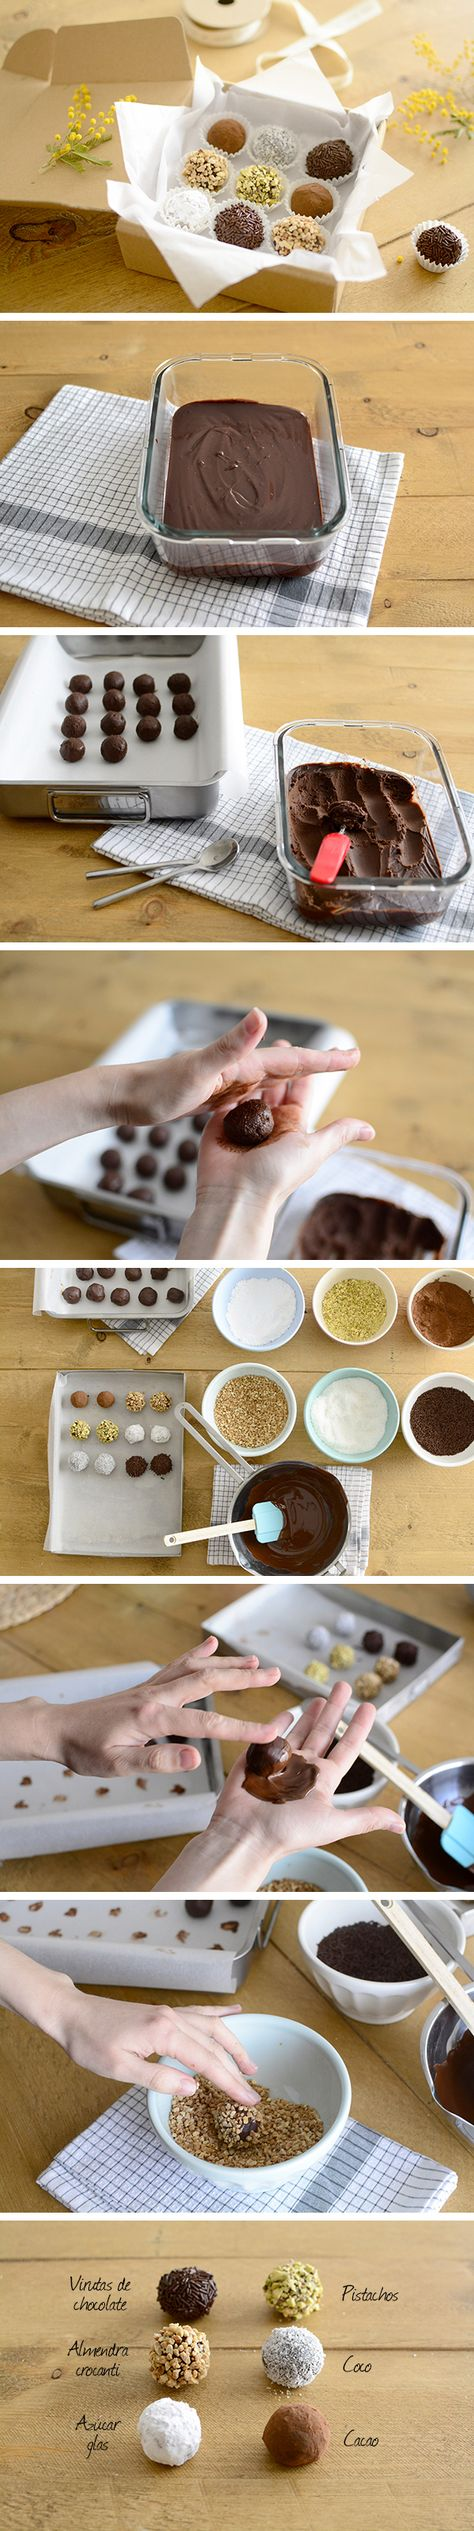 Chocolate truffles - Trufas de chocolate                              …